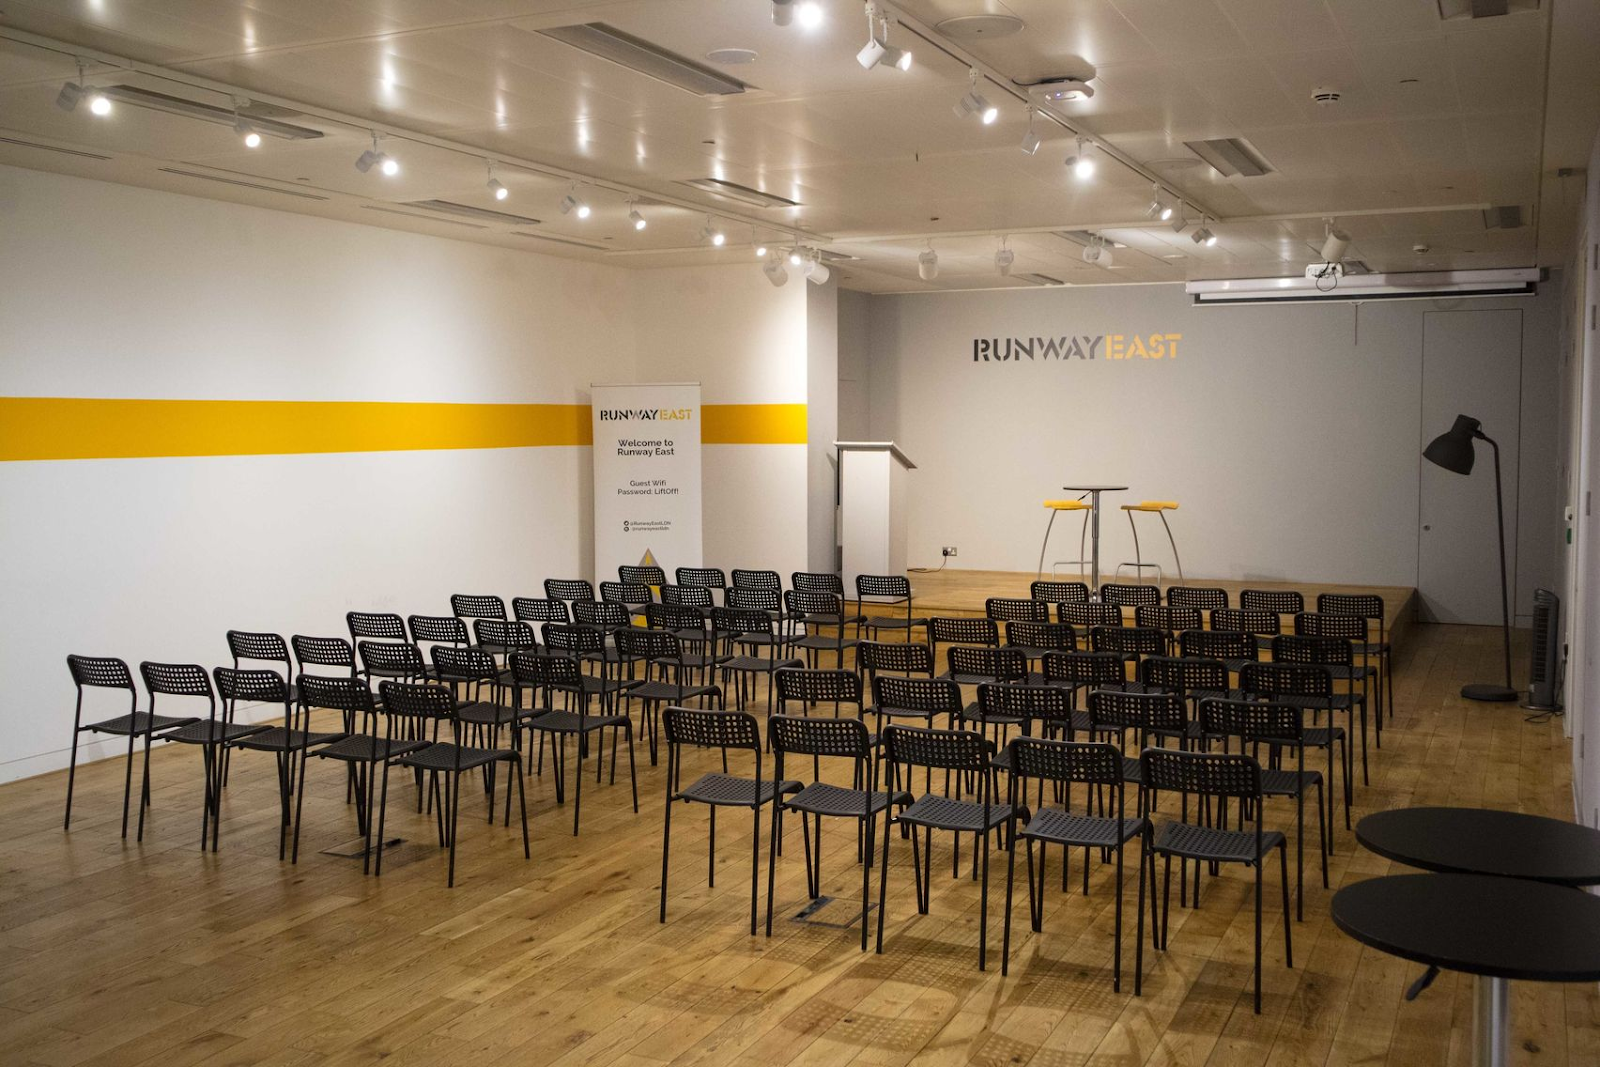 a large workshop space set up for a conference at runway east